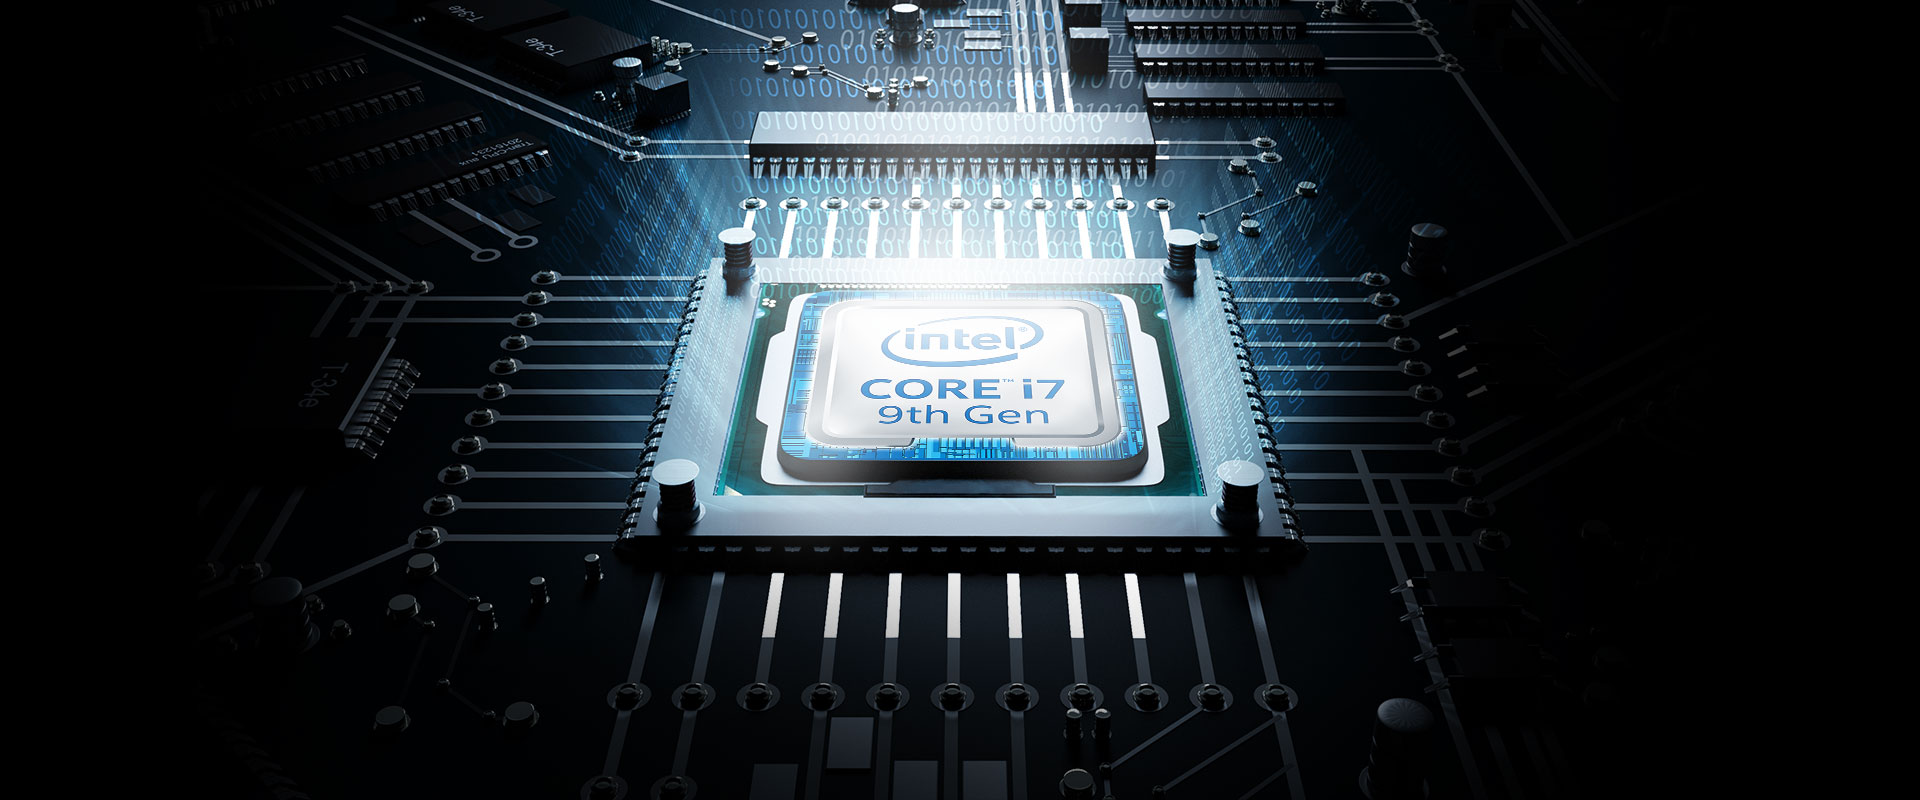 The 9th Gen Intel Core i7 CPU installed.